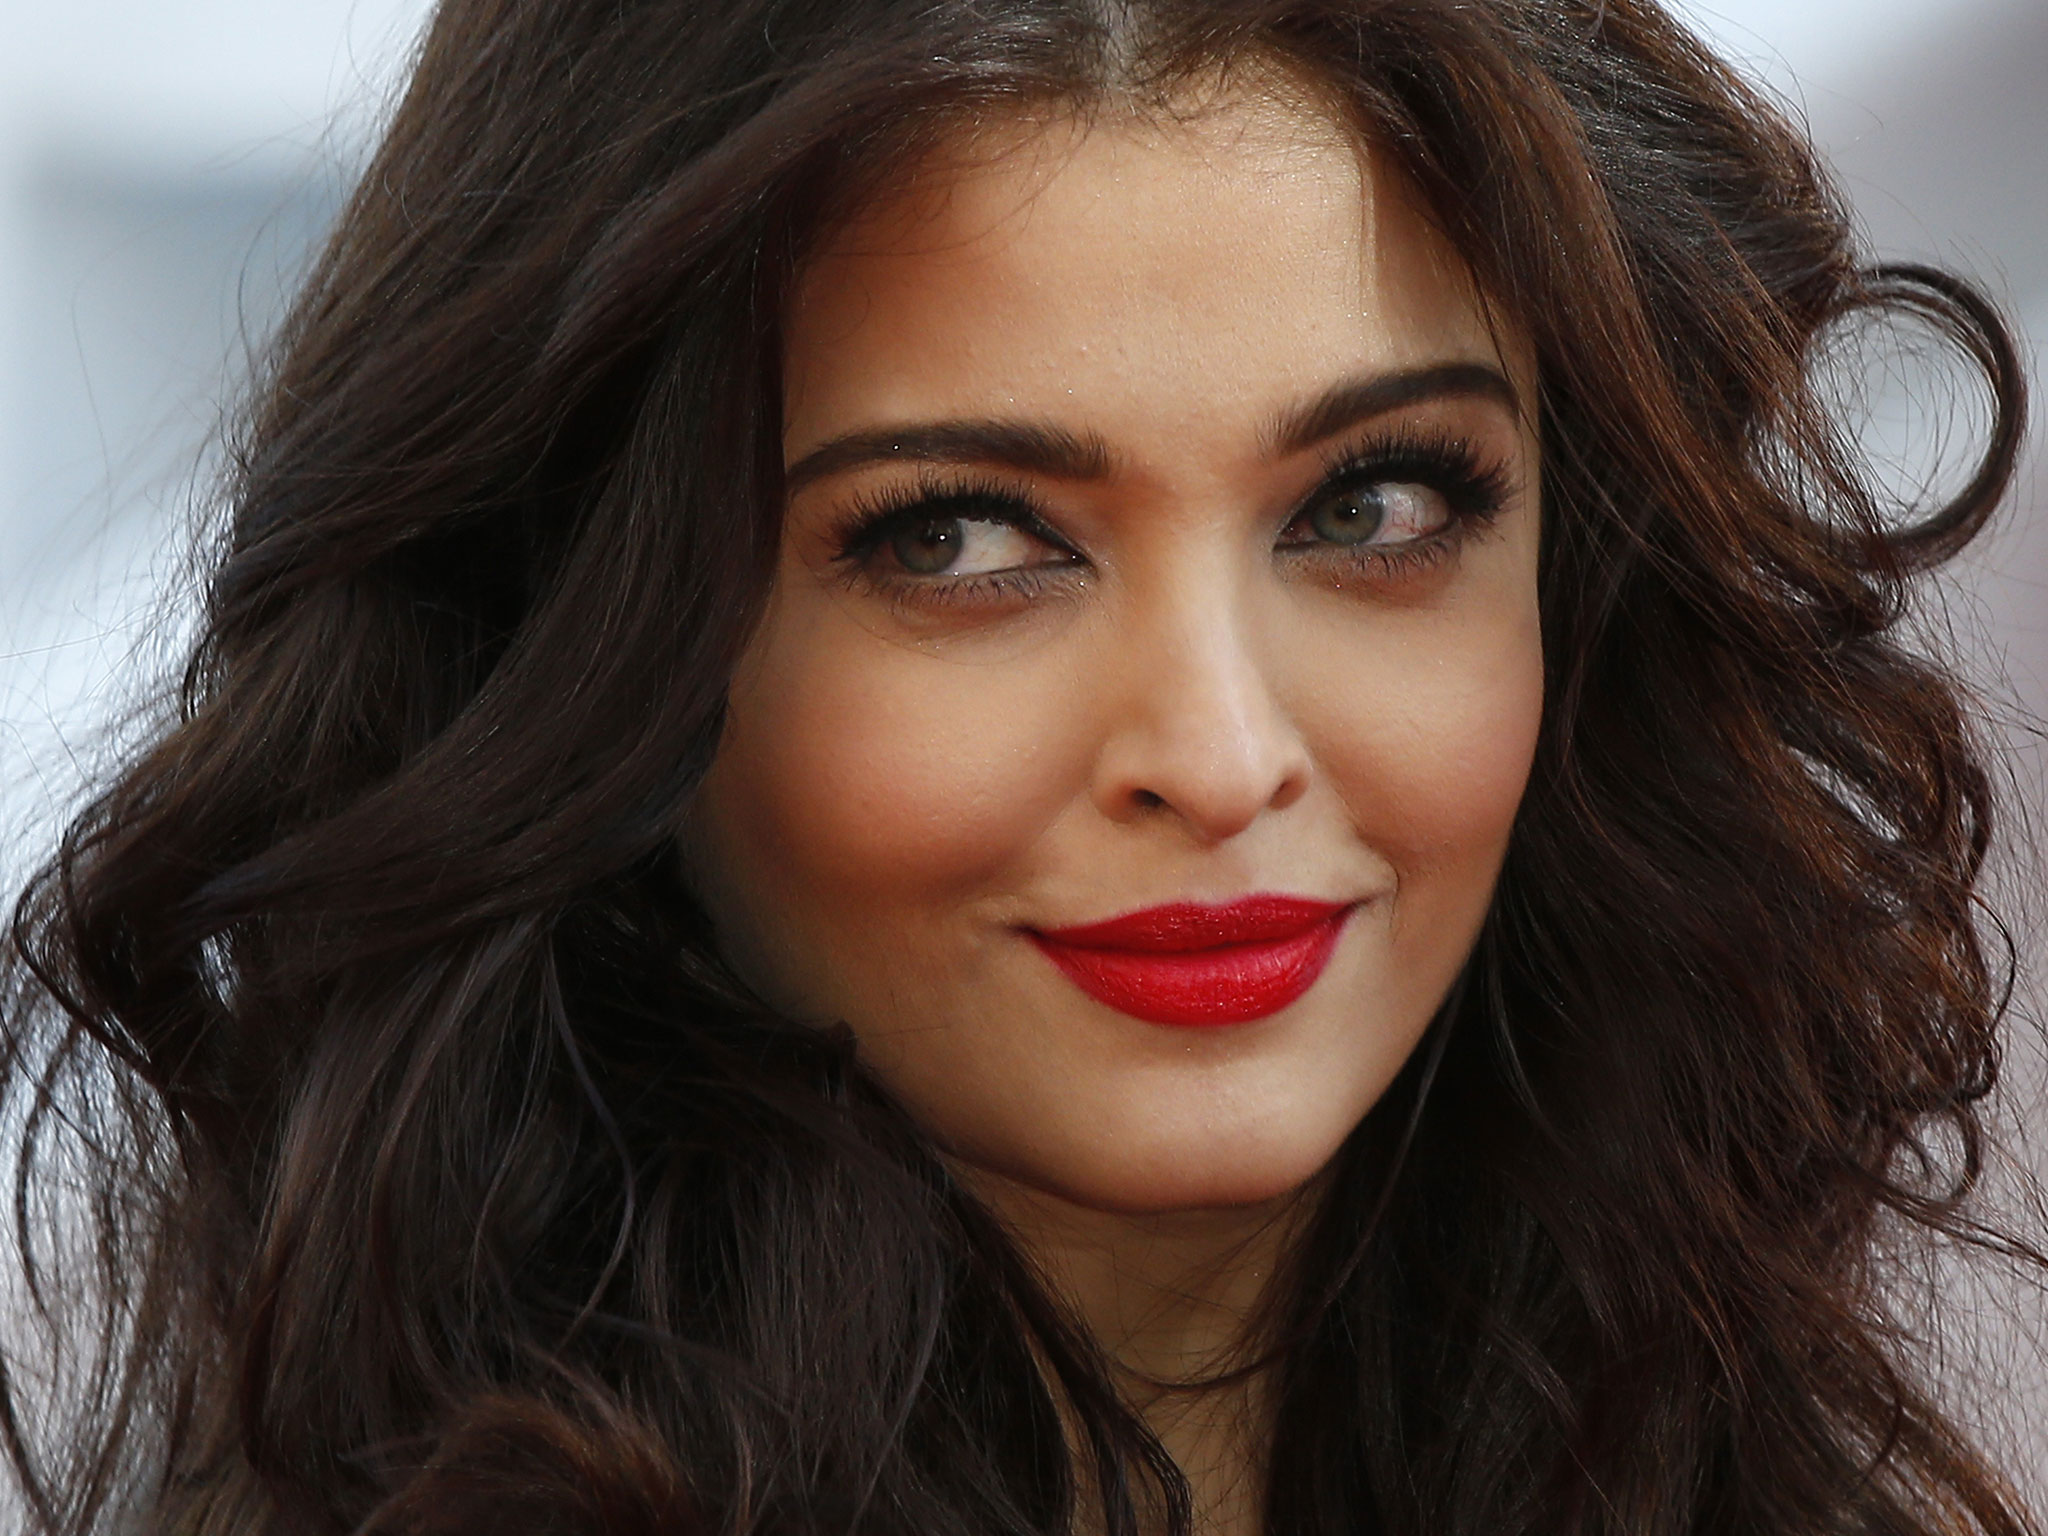 Top 10 Richest Bollywood Actresses in 2018 - Top 10 Review Of